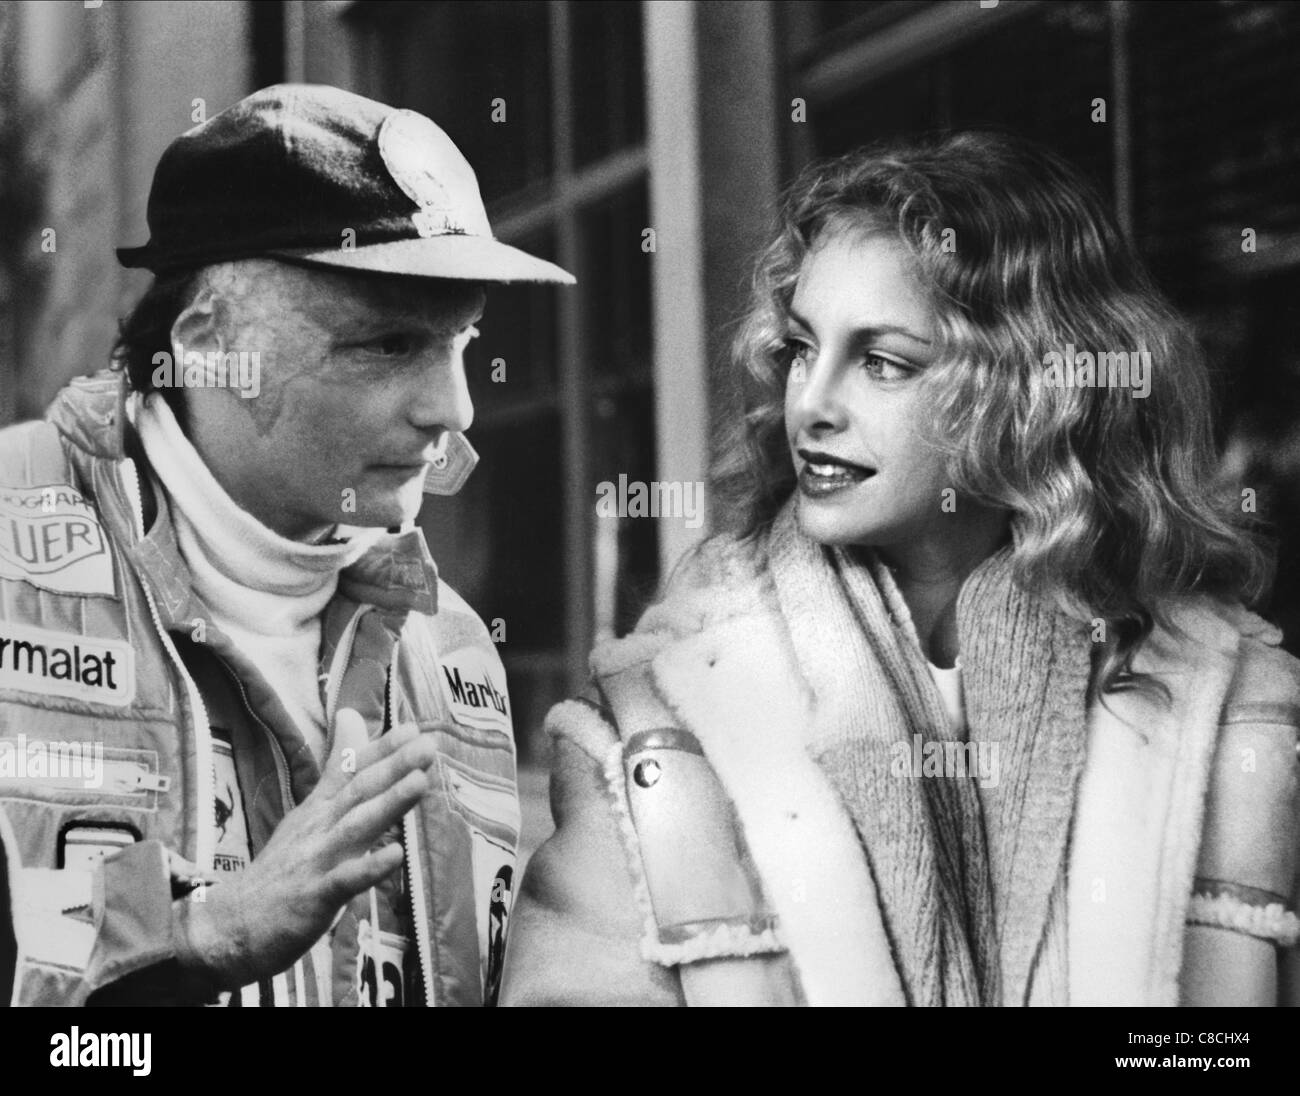 Niki Lauda Stock Photos Amp Niki Lauda Stock Images Alamy